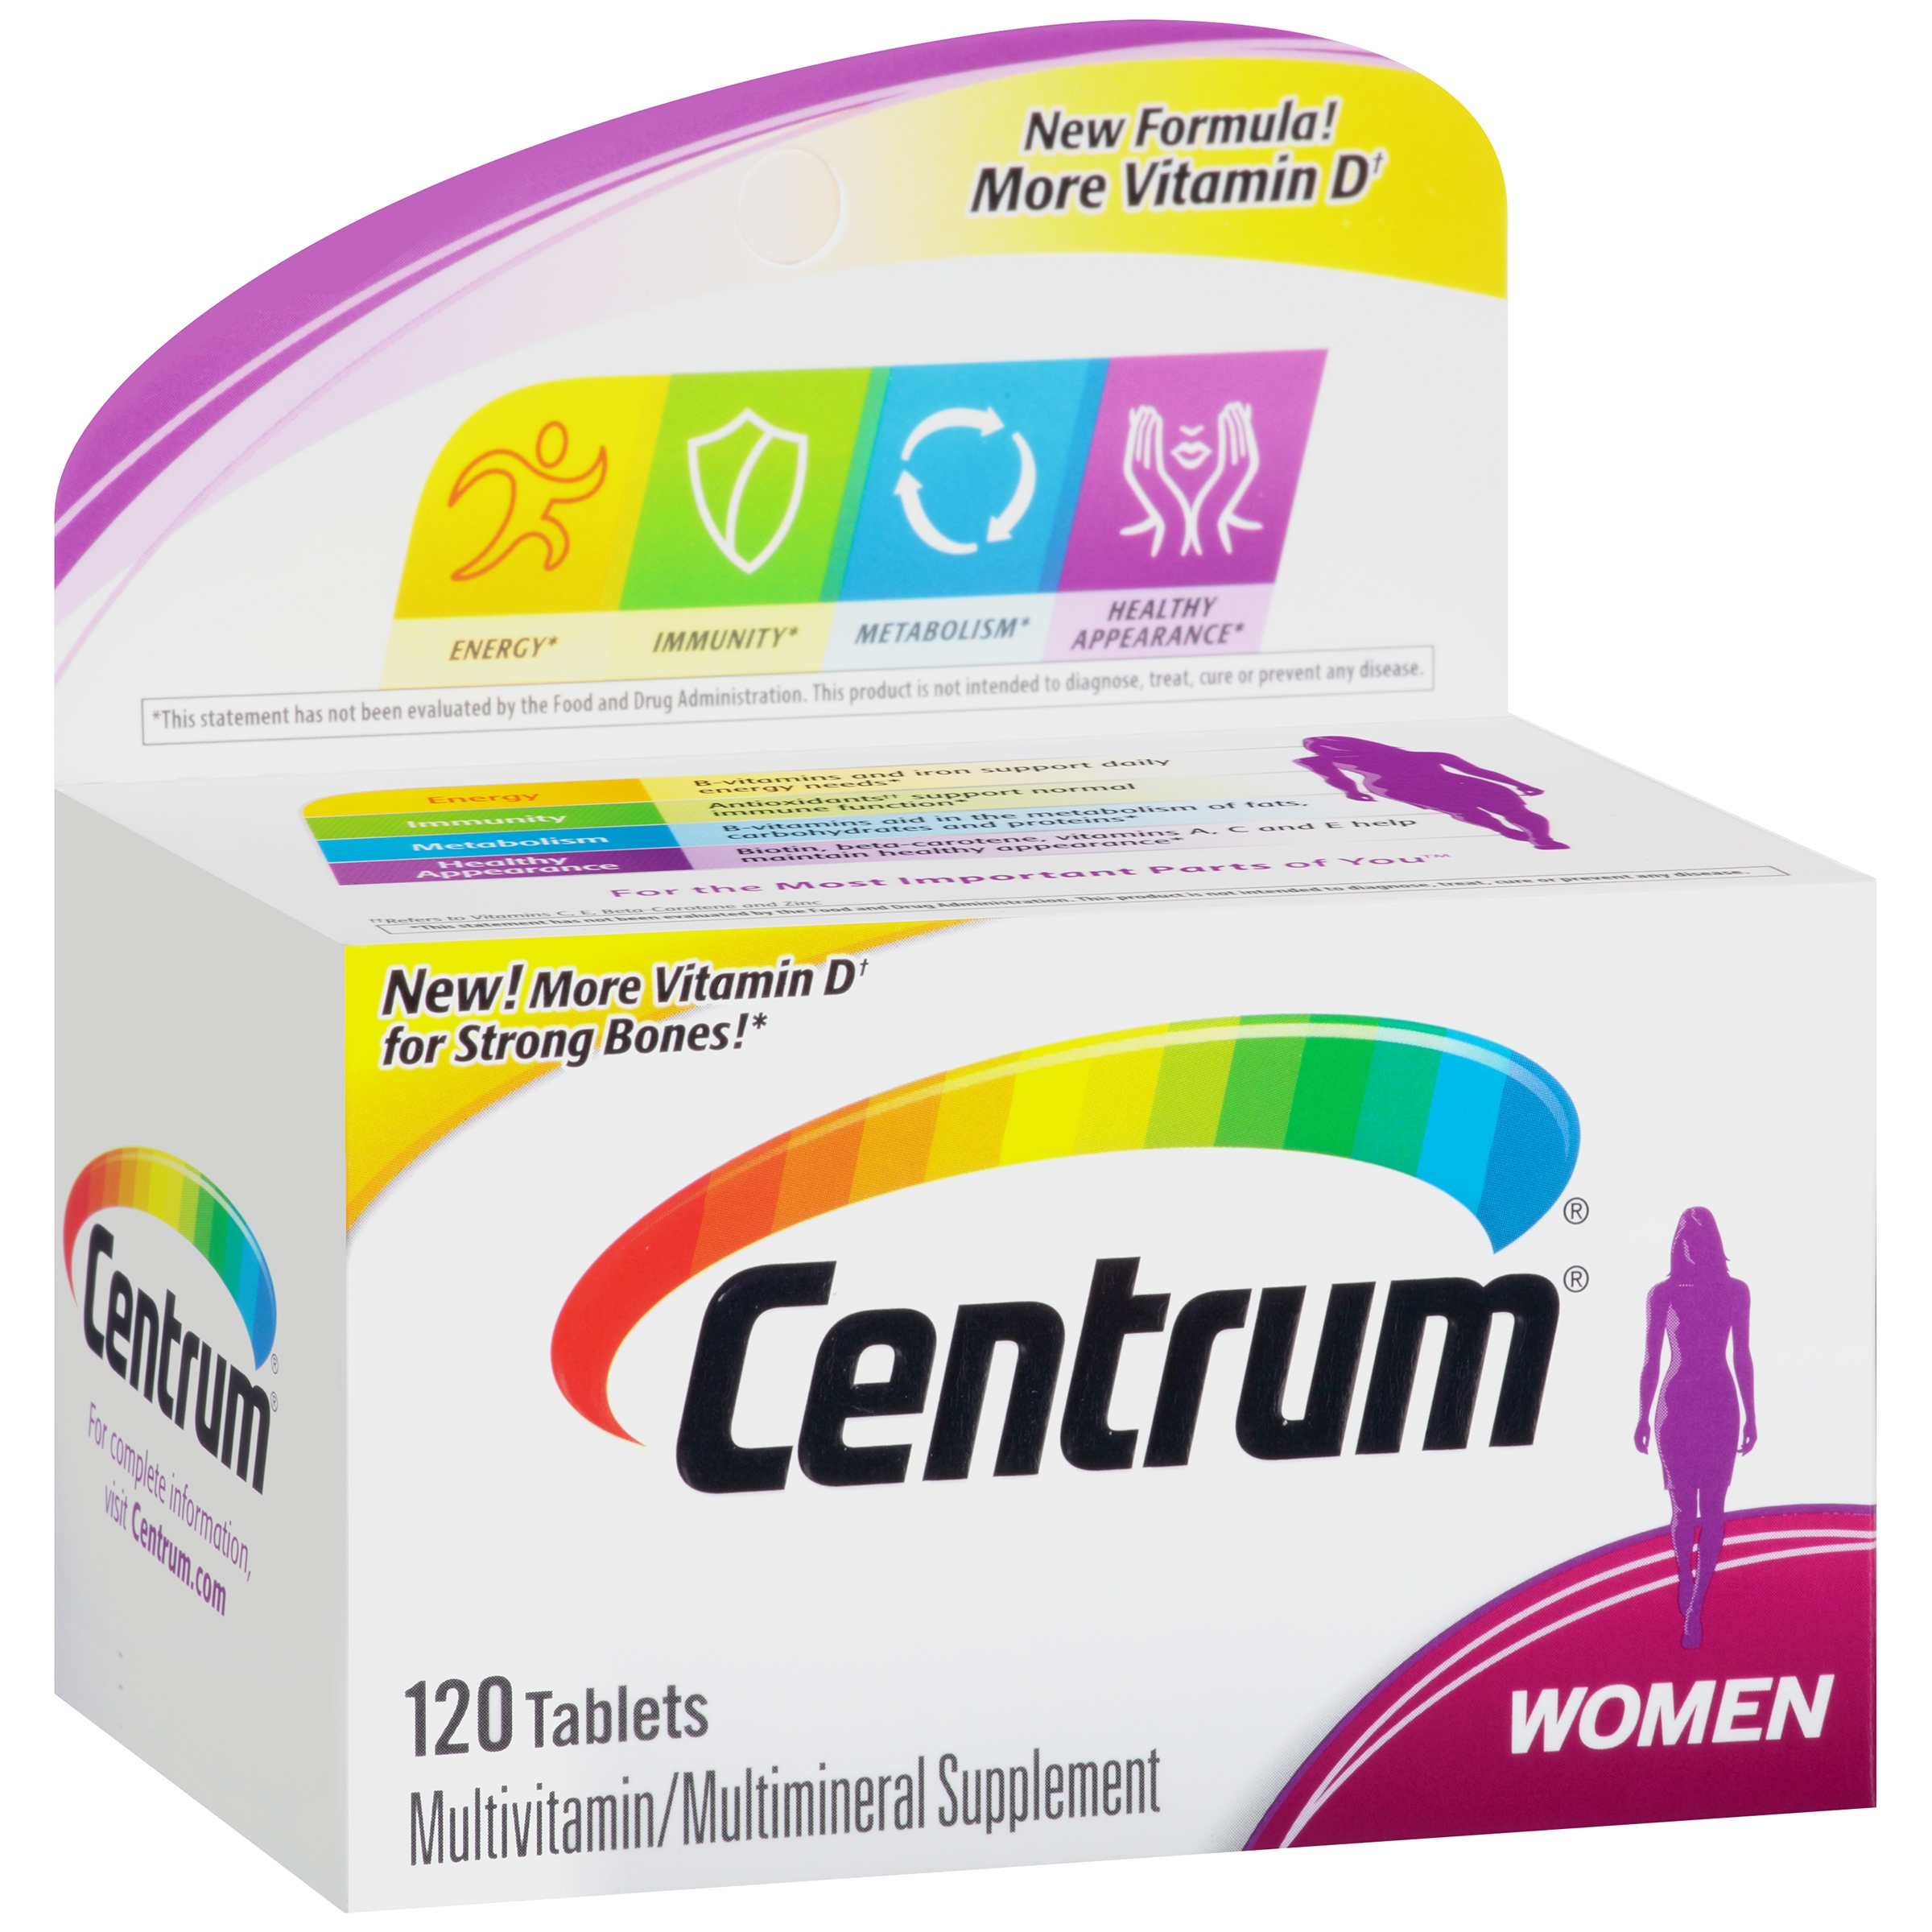 Centrum Women (120 Count) Multivitamin / Multimineral Supplement Tablet, Vitamin D3